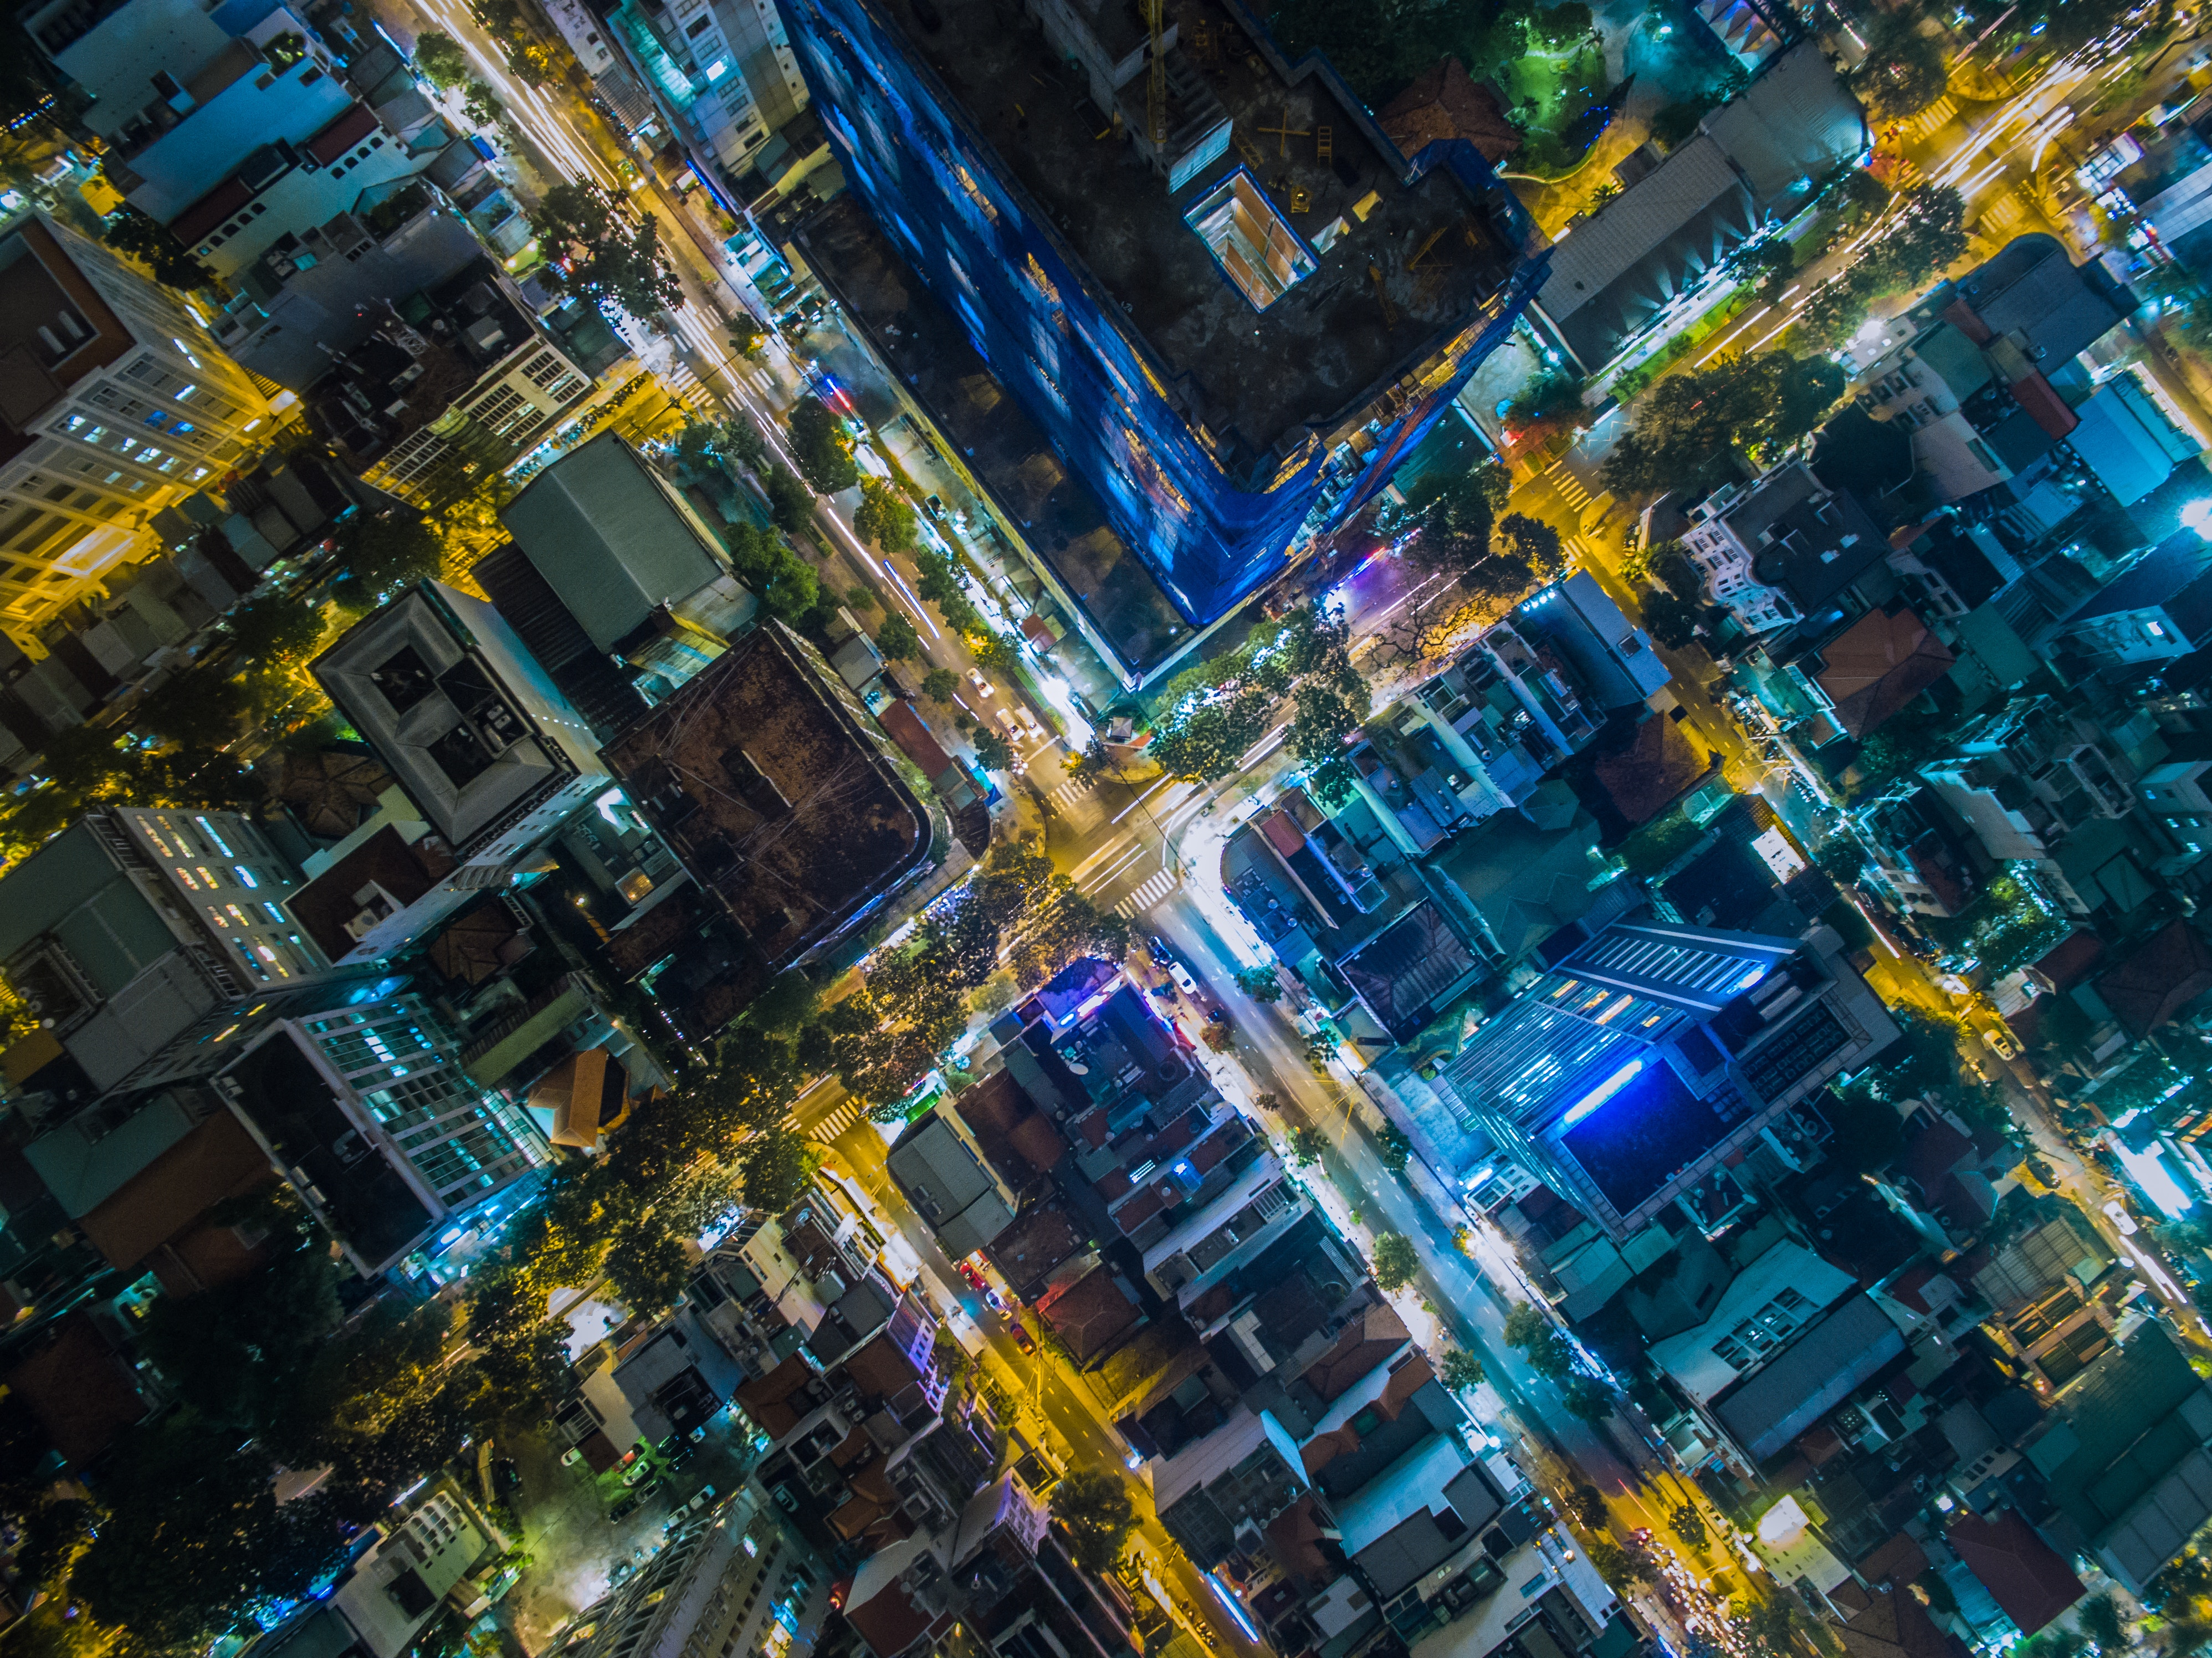 89315 free wallpaper 1080x2340 for phone, download images Cities, View From Above, Night City, Vietnam, Viet Nam, Ho Chi Minh City 1080x2340 for mobile